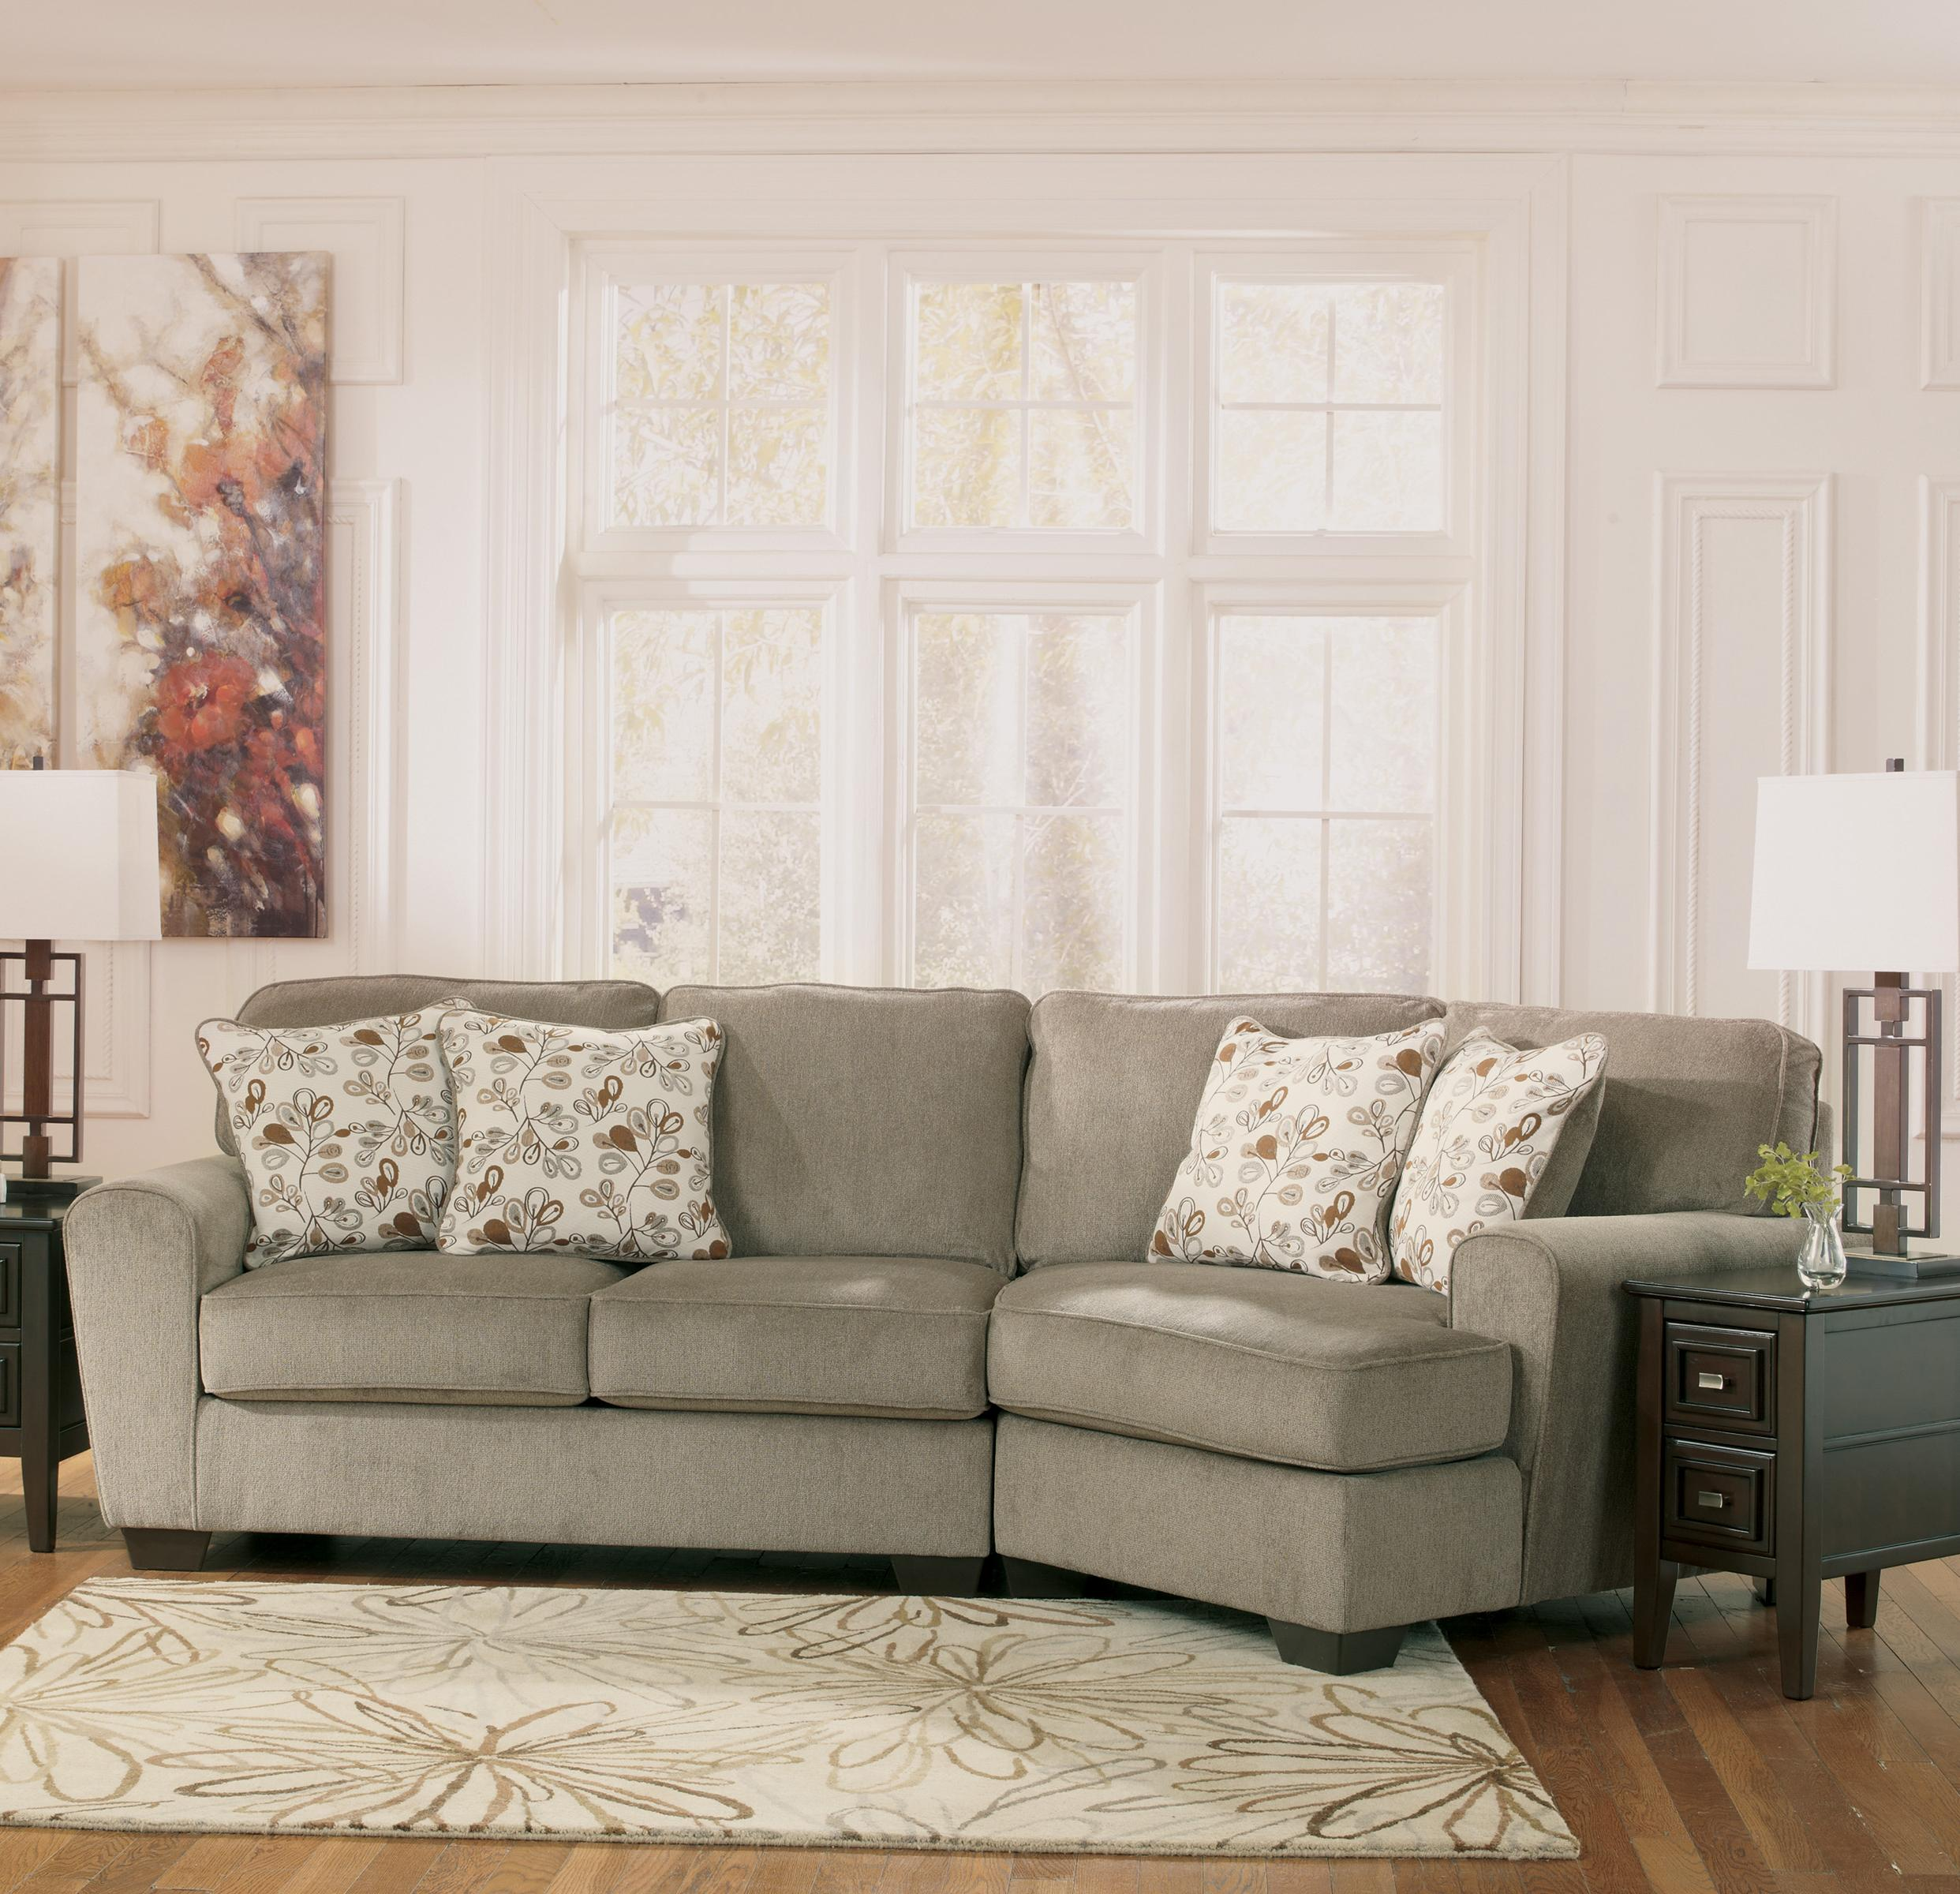 Ashley Furntiure: Patina 2-Piece Sectional With Right Cuddler